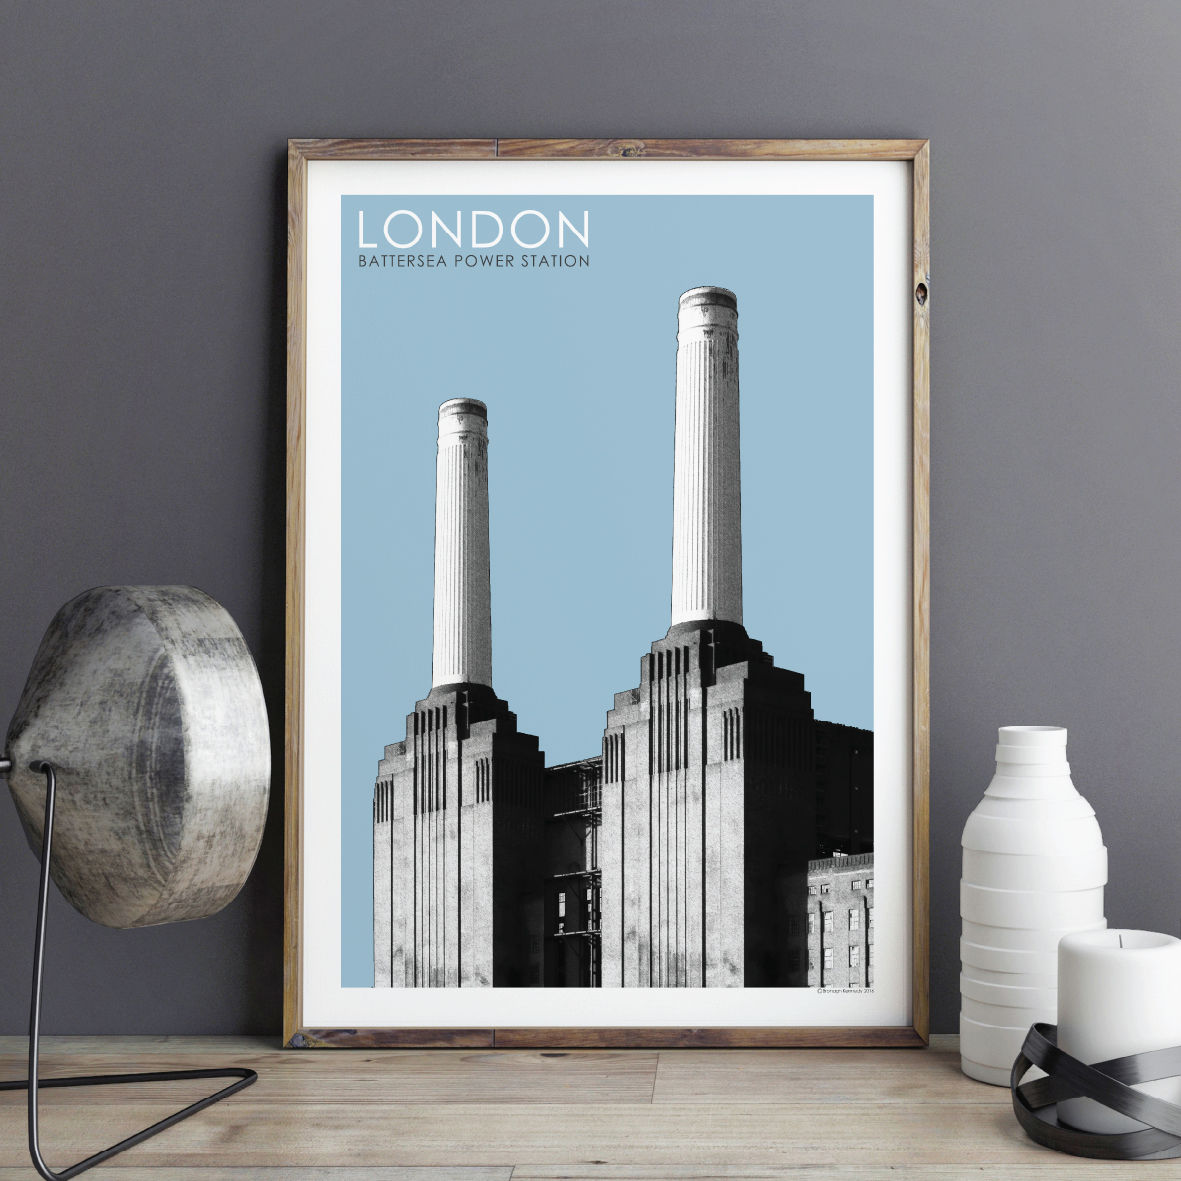 London Wall Art Print   Battersea Power Station   Travel Prints   City  Prints   London Gift